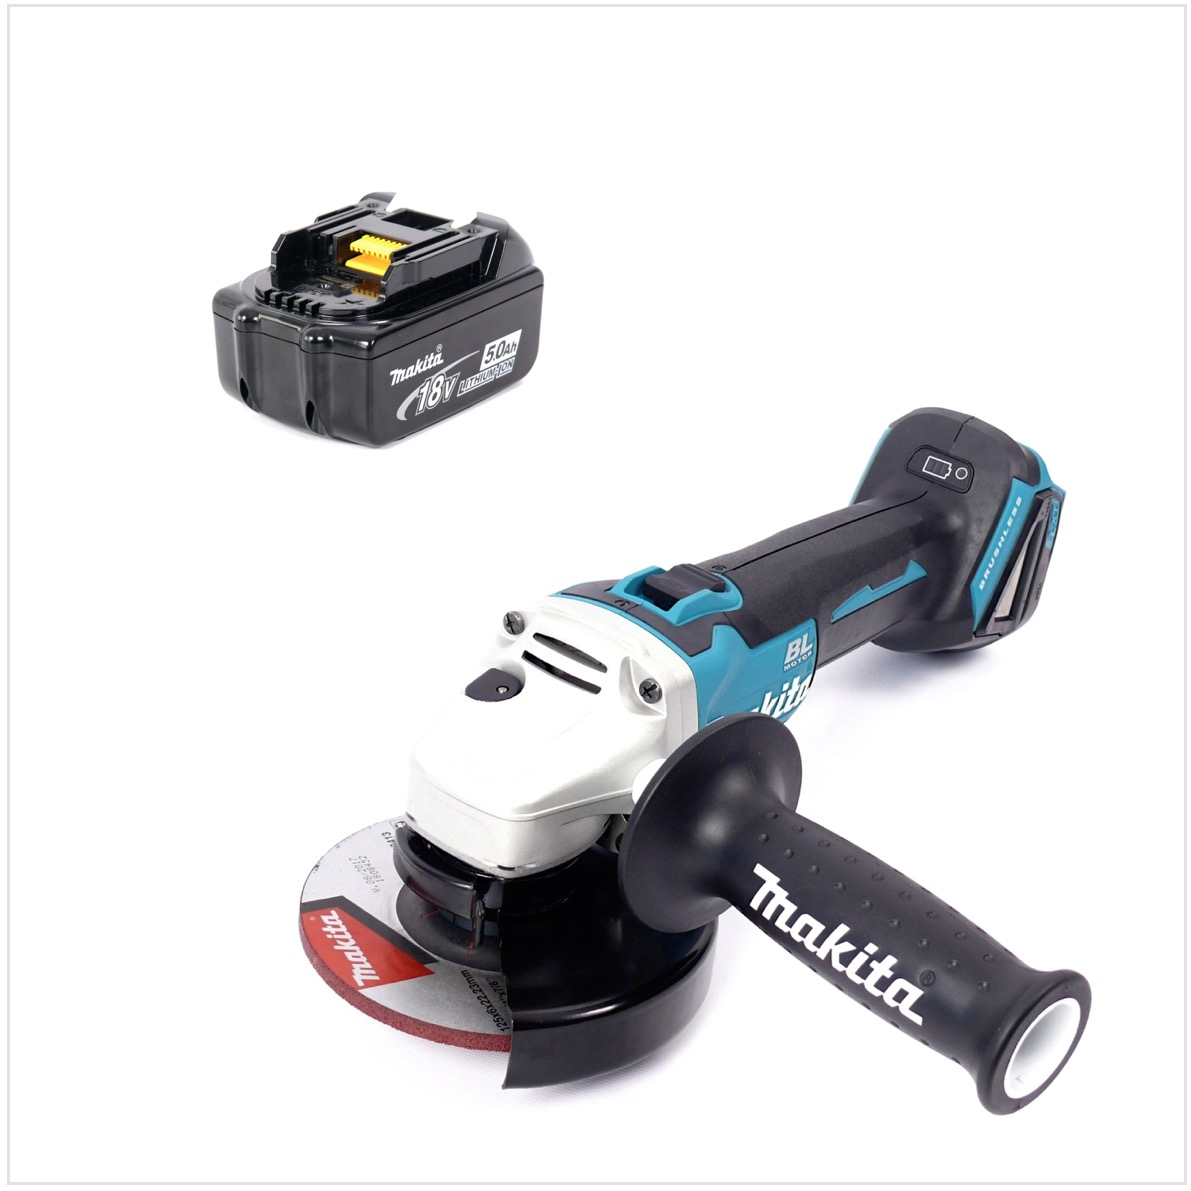 makita dga 504 18v li ion akku 125 mm brushless winkelschleifer mit 1x 5 ah akku ebay. Black Bedroom Furniture Sets. Home Design Ideas